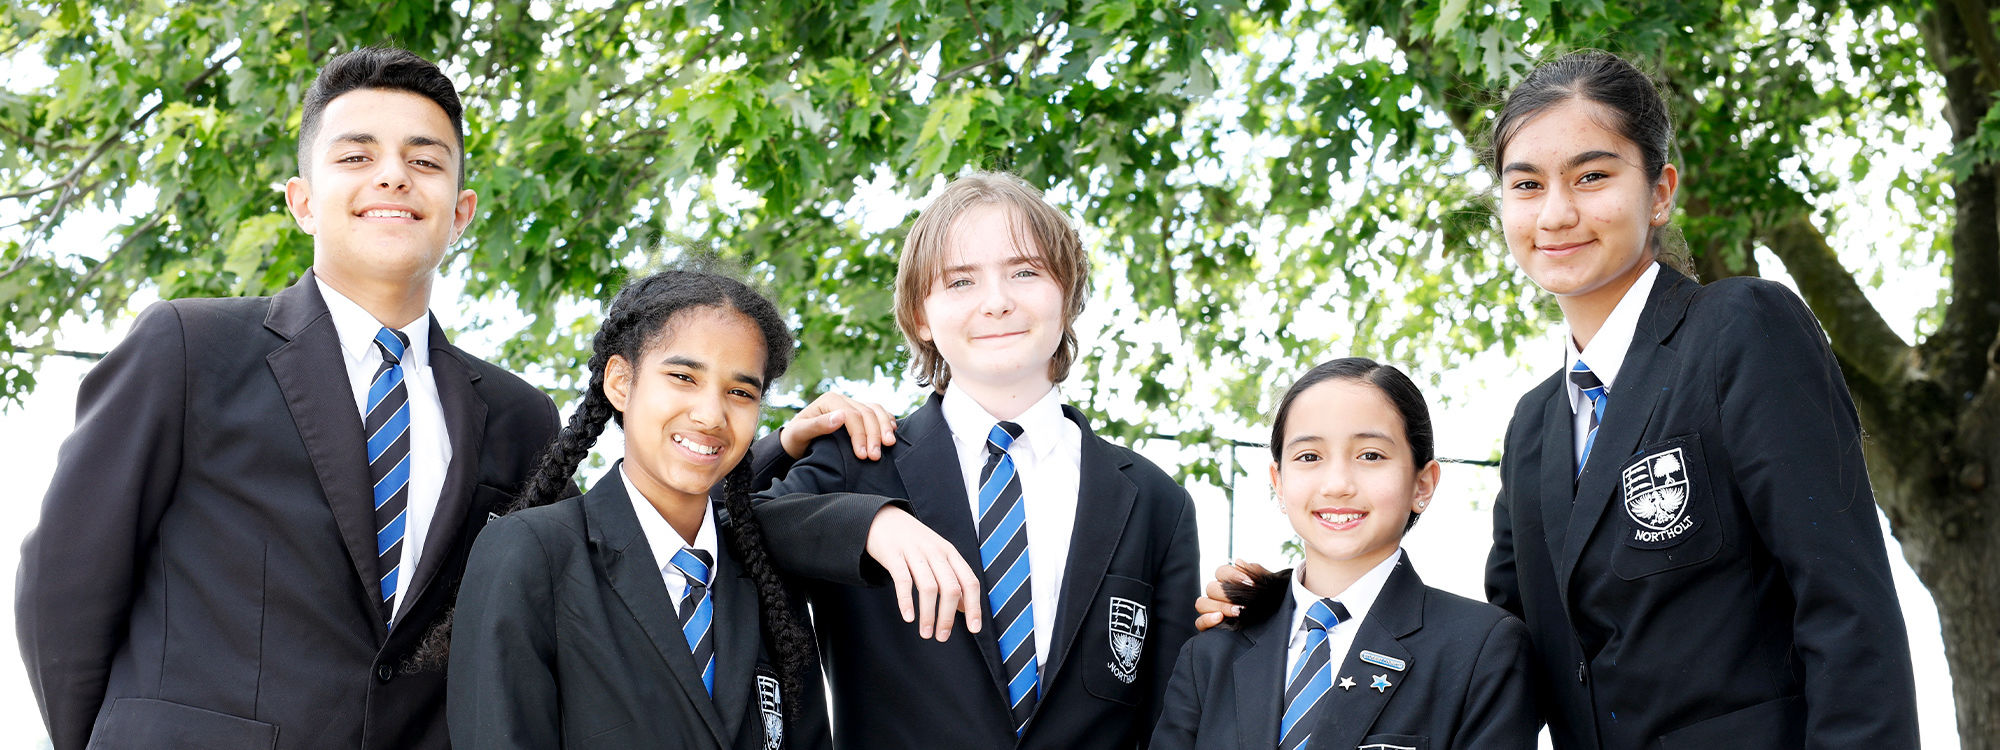 Northolt high school header image 1